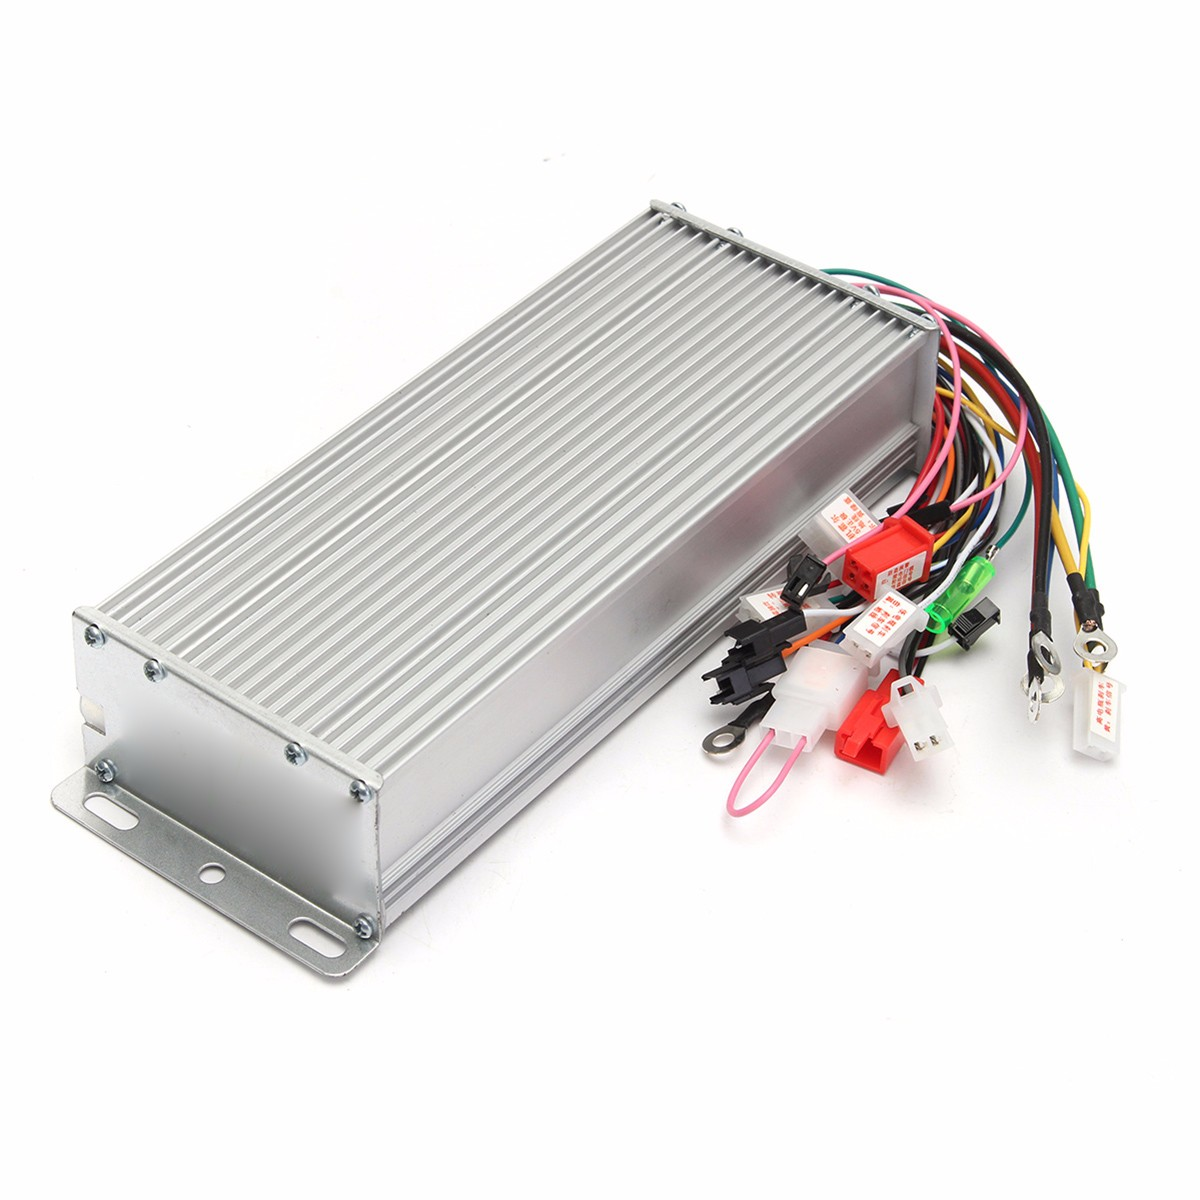 Dc 48v 1500w Brushless Motor Controller For E Bike Scooter Electric Threephase With 36v Lowvoltage Control Circuit Relaycontrol Bicycle